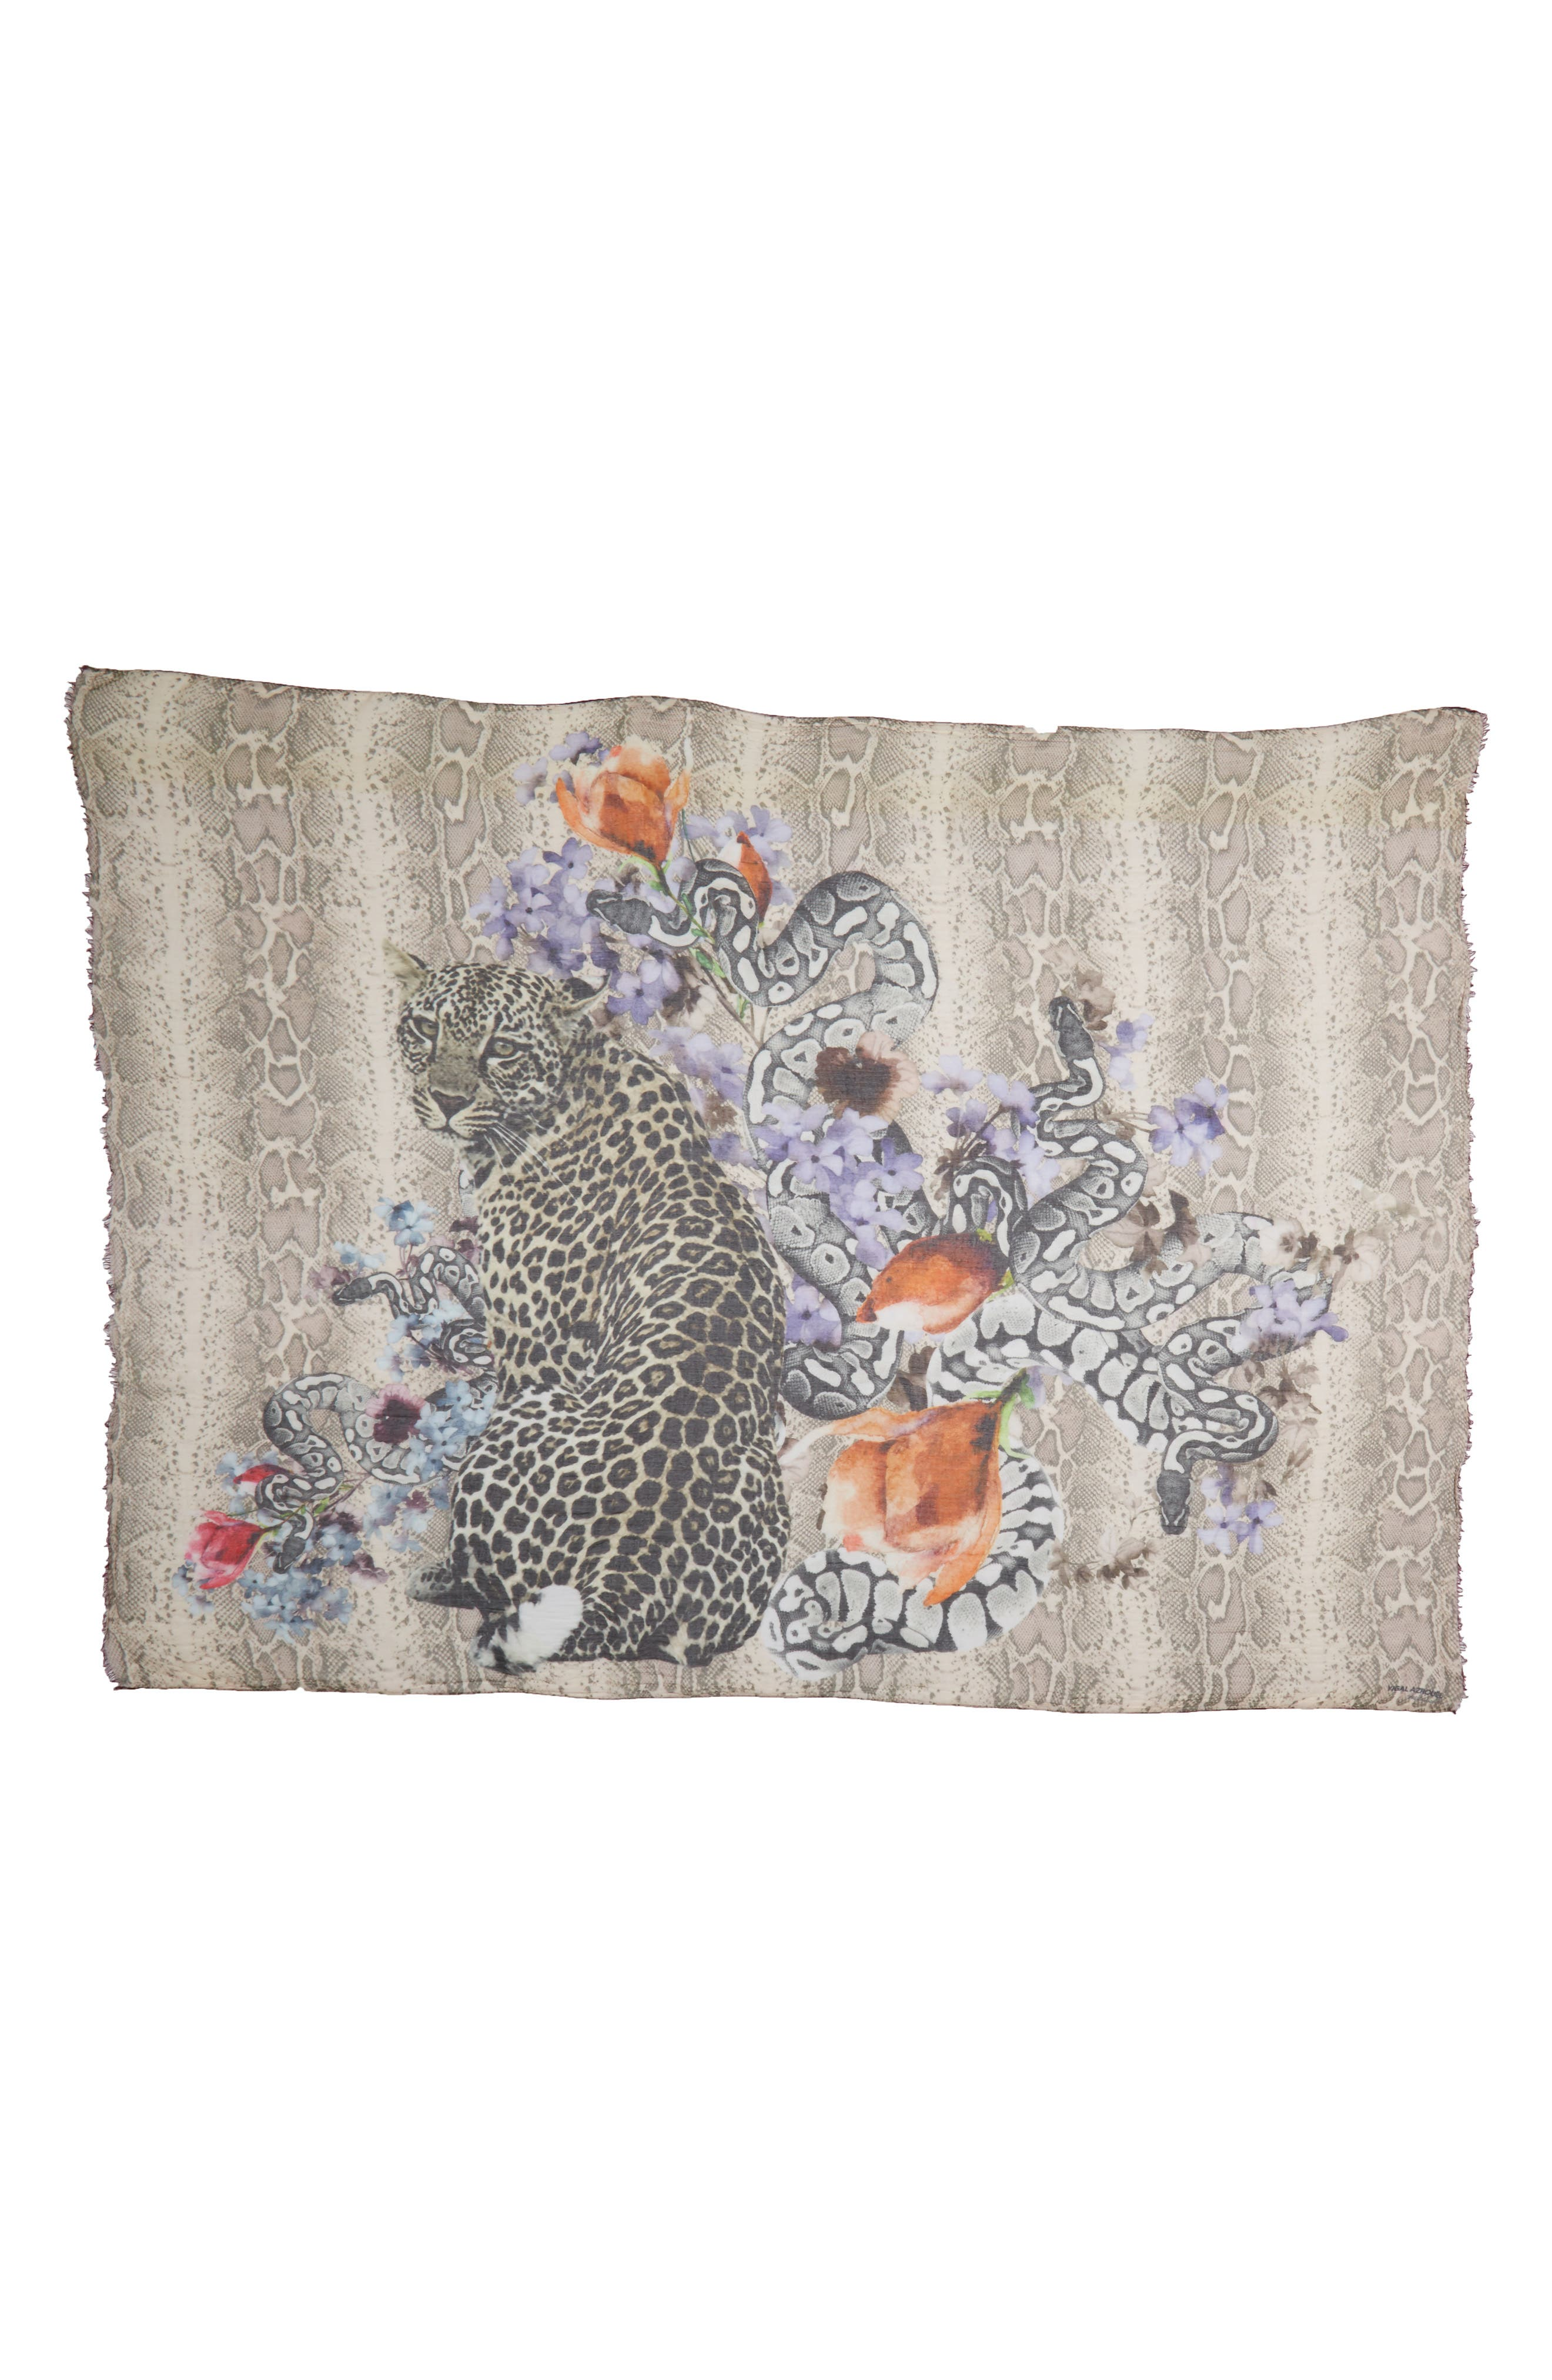 Alternate Image 1 Selected - Yigal Azrouël Floral Cheetah Modal & Cashmere Scarf